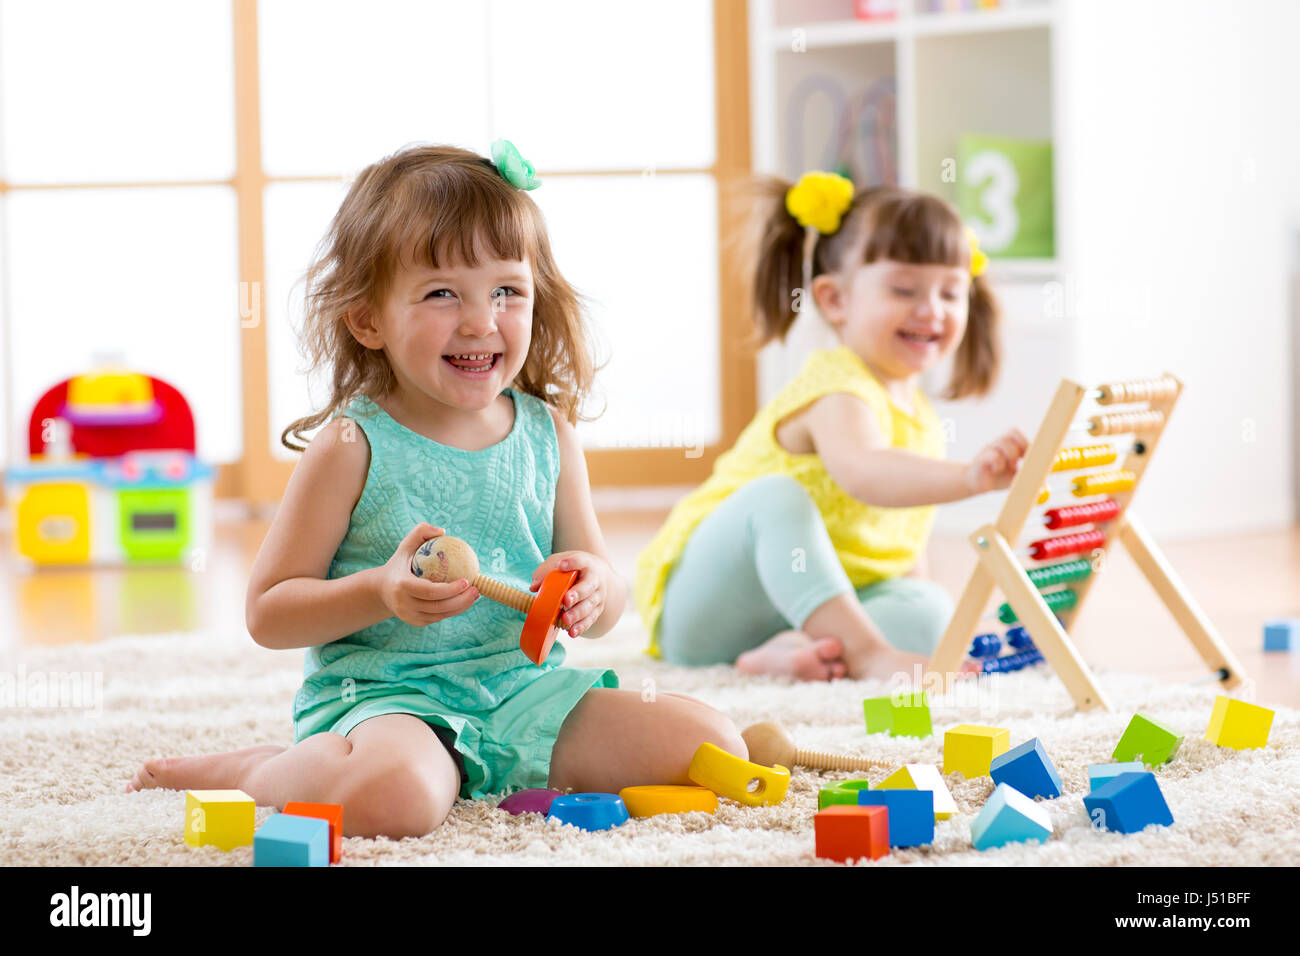 Kinder Garden: Little Kids Playing With Abacus And Constructor Toys On